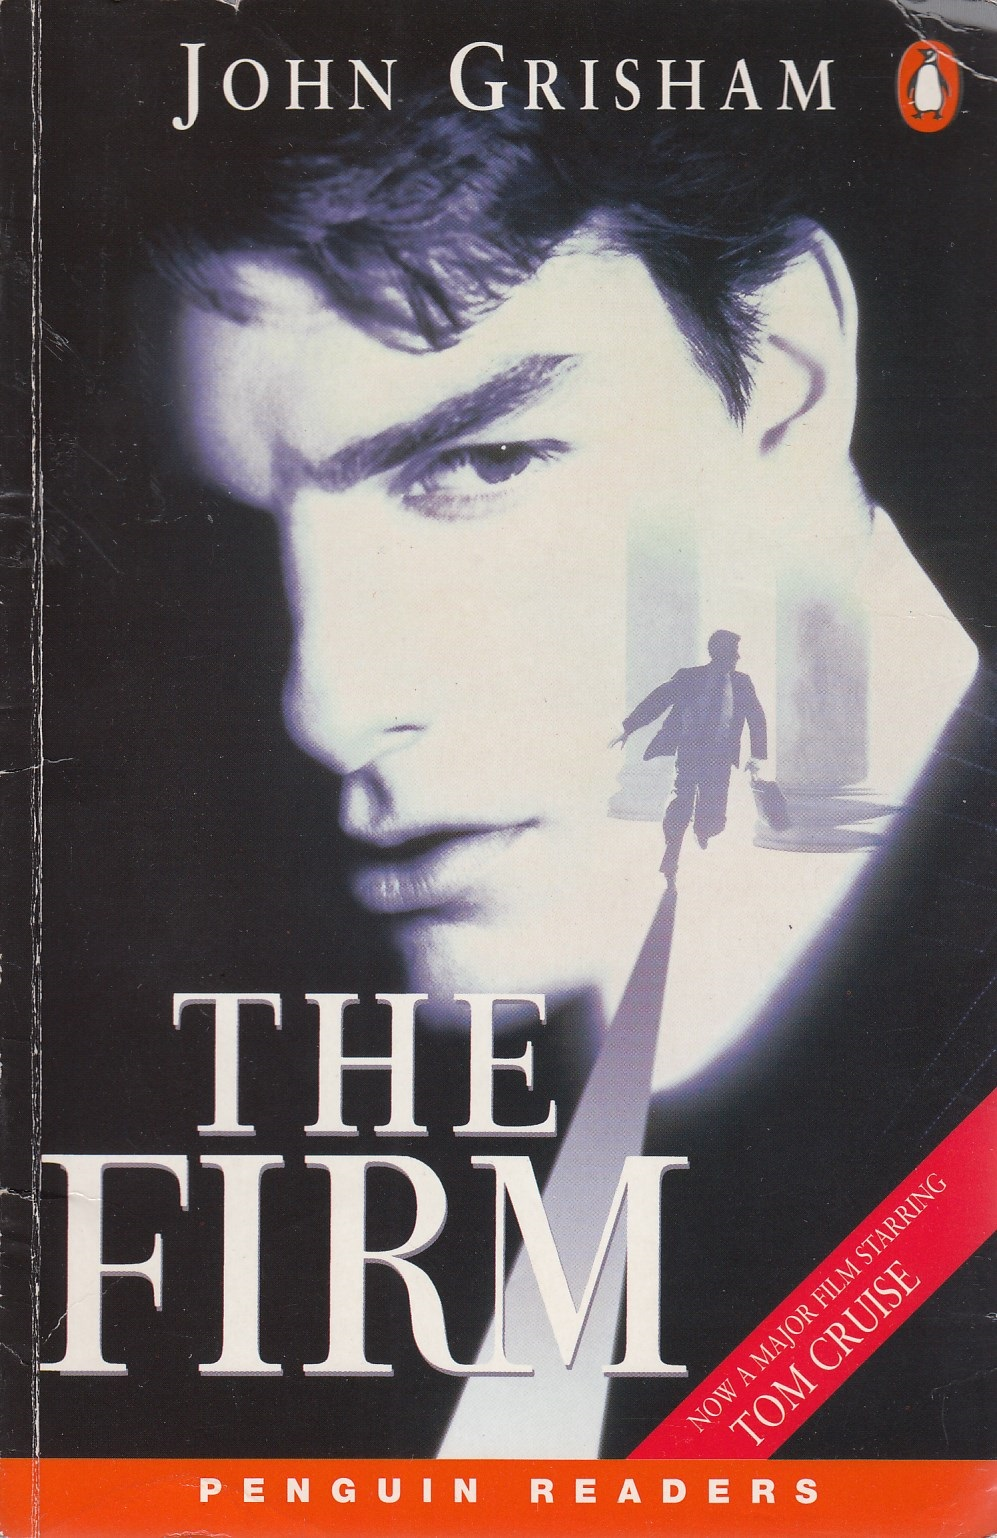 Penguin Readers 5: The Firm - John Grisham [Pap...